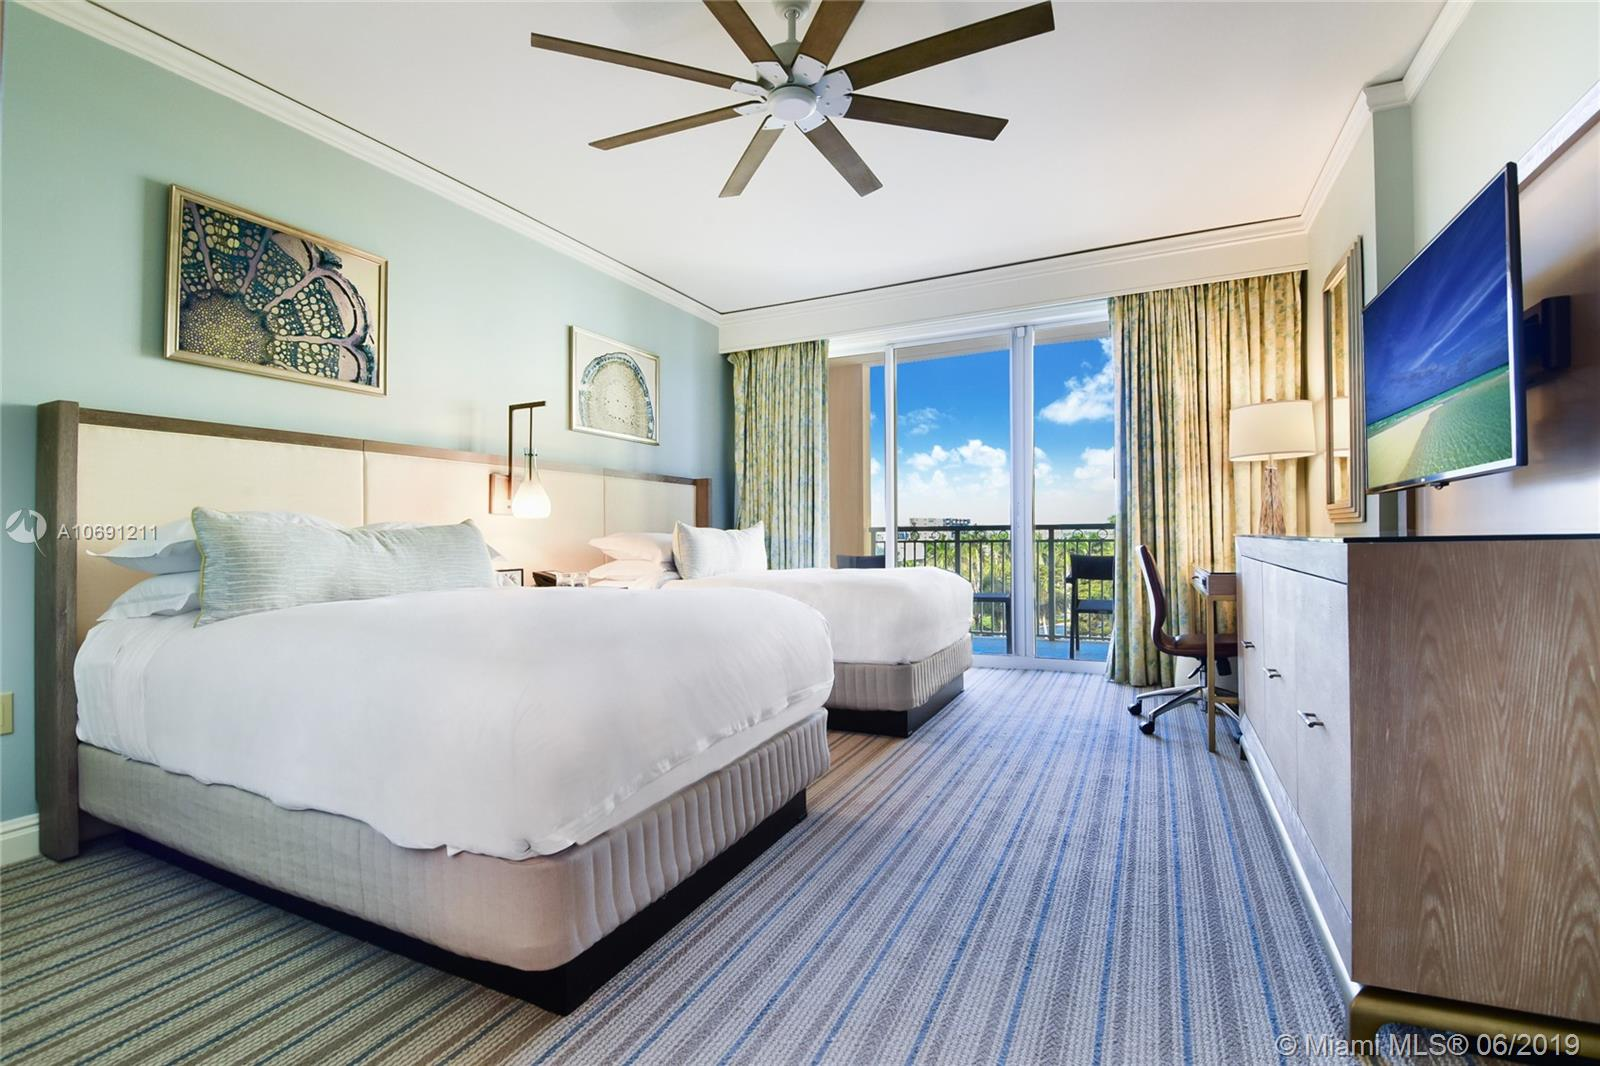 455  GRAND BAY DR #470 For Sale A10691211, FL